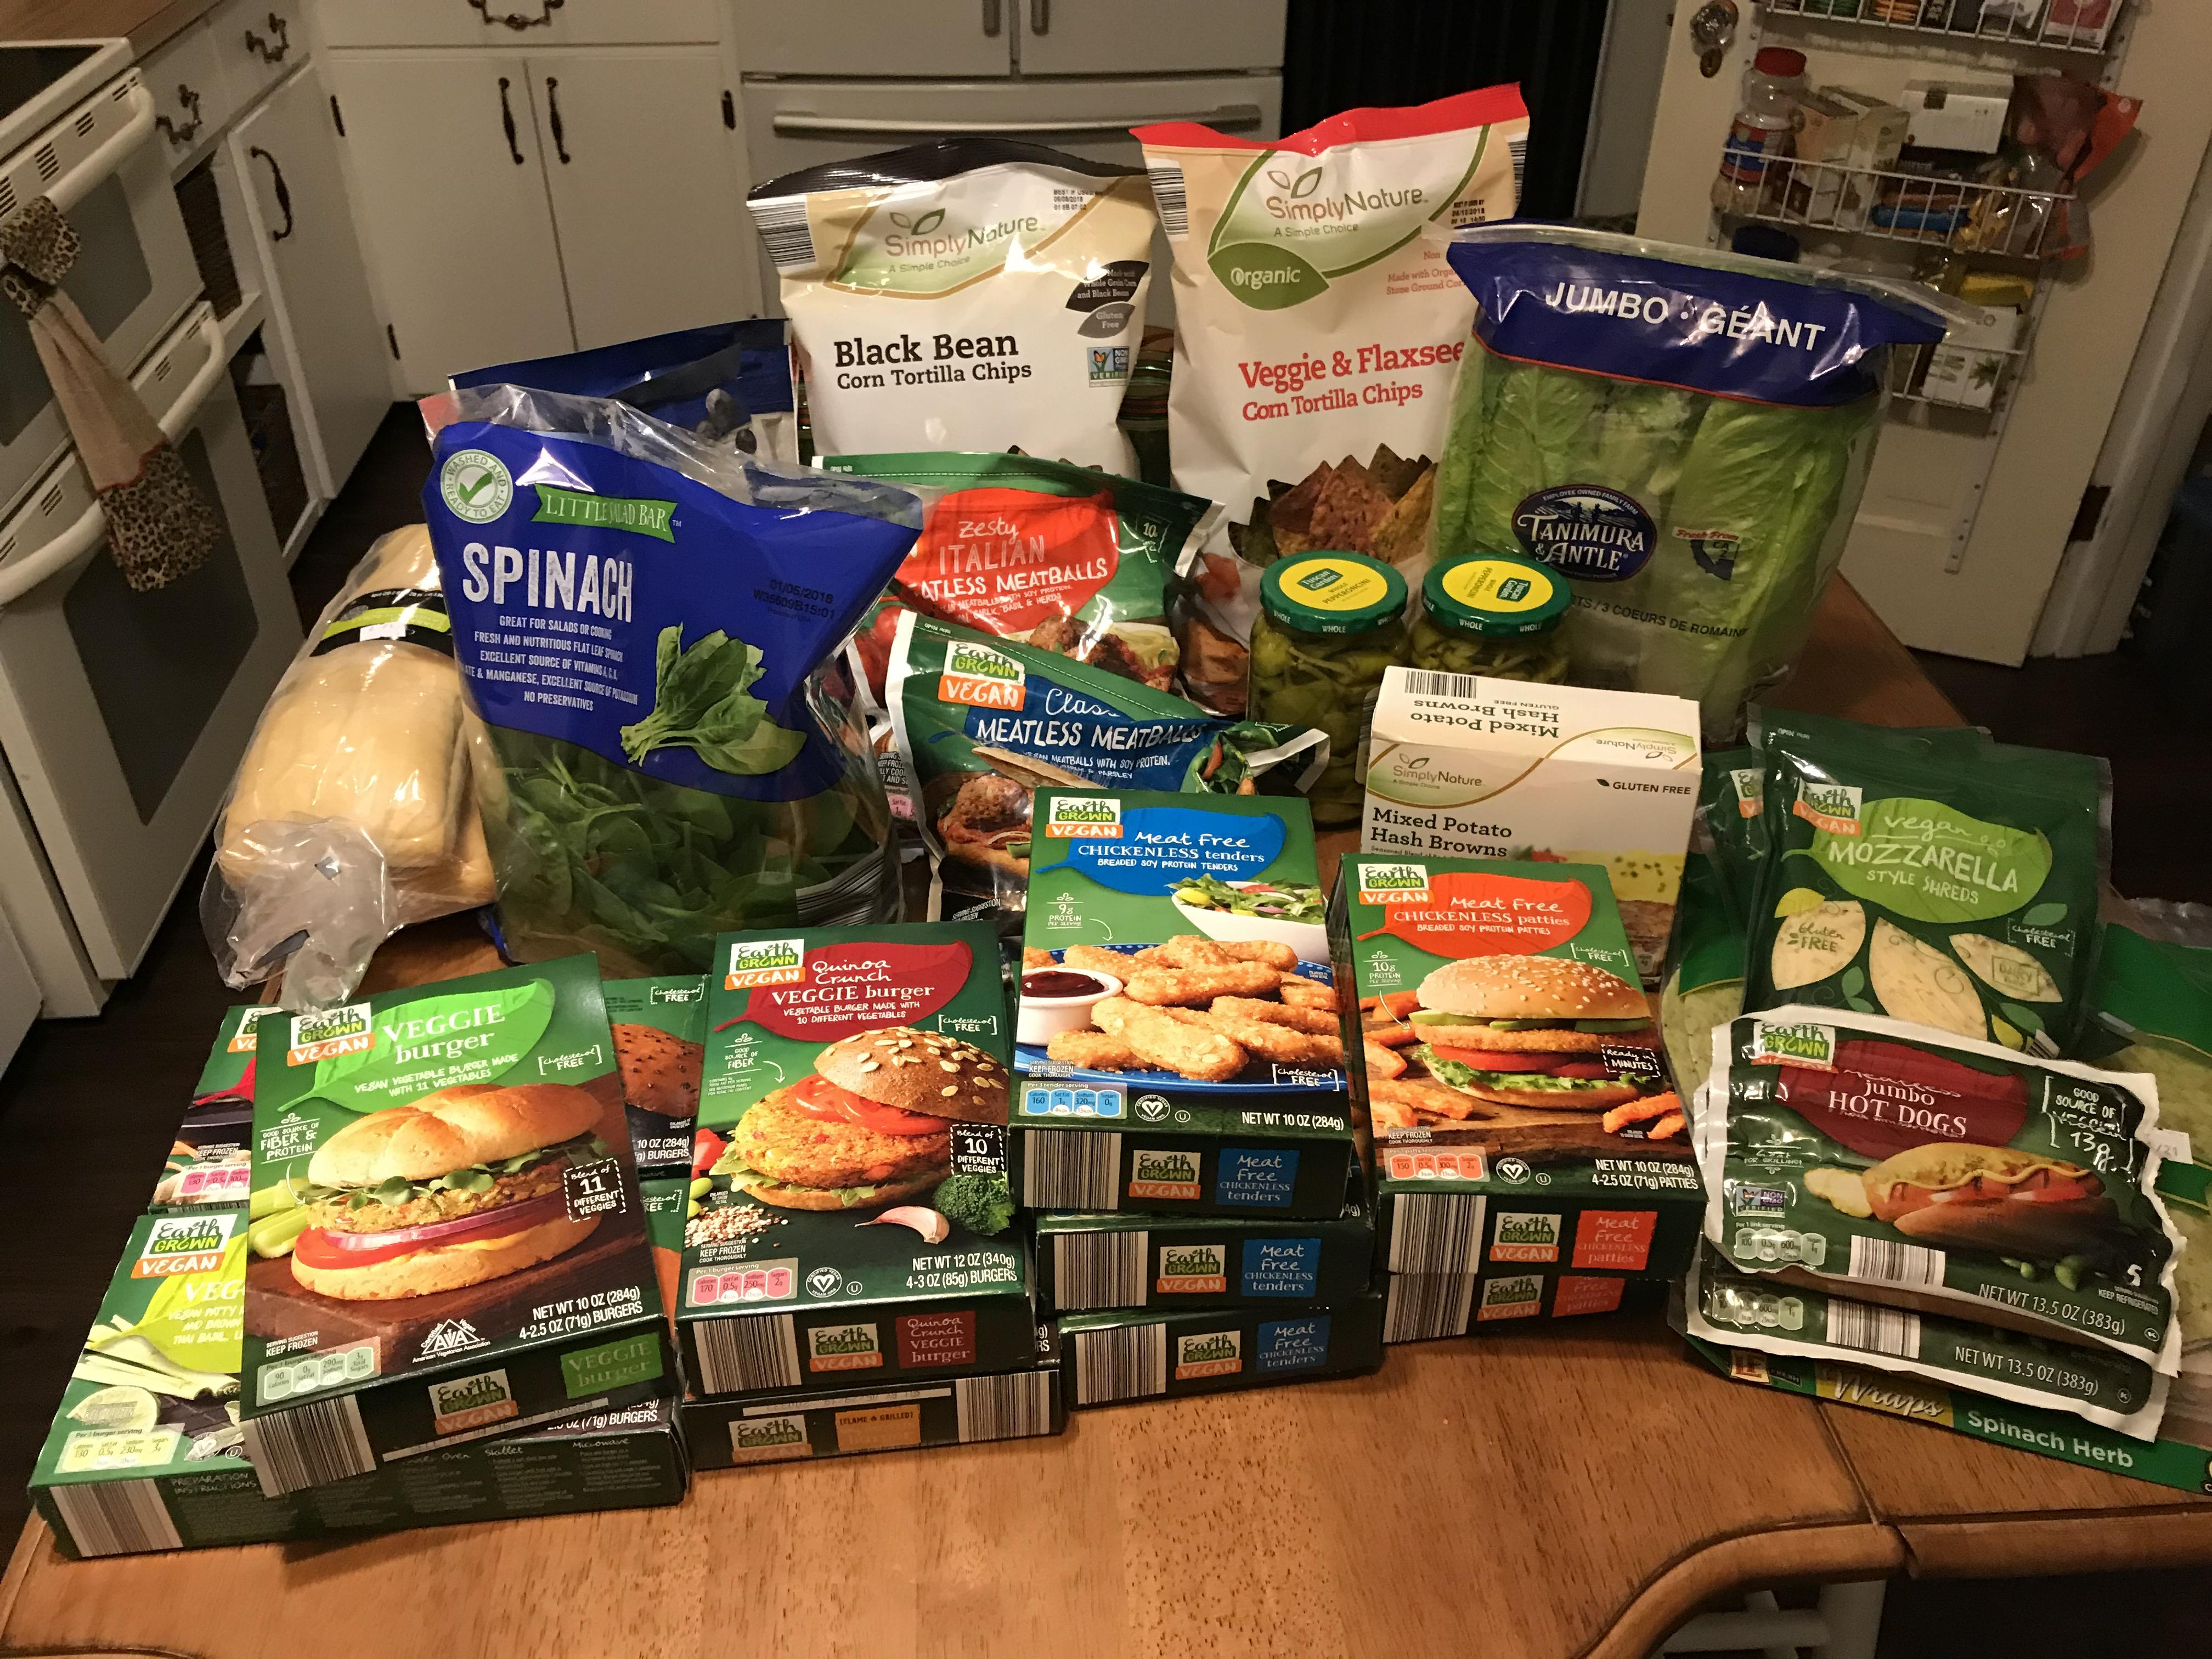 ALDI [VEGAN] Product Options: What Does Aldi Have That is